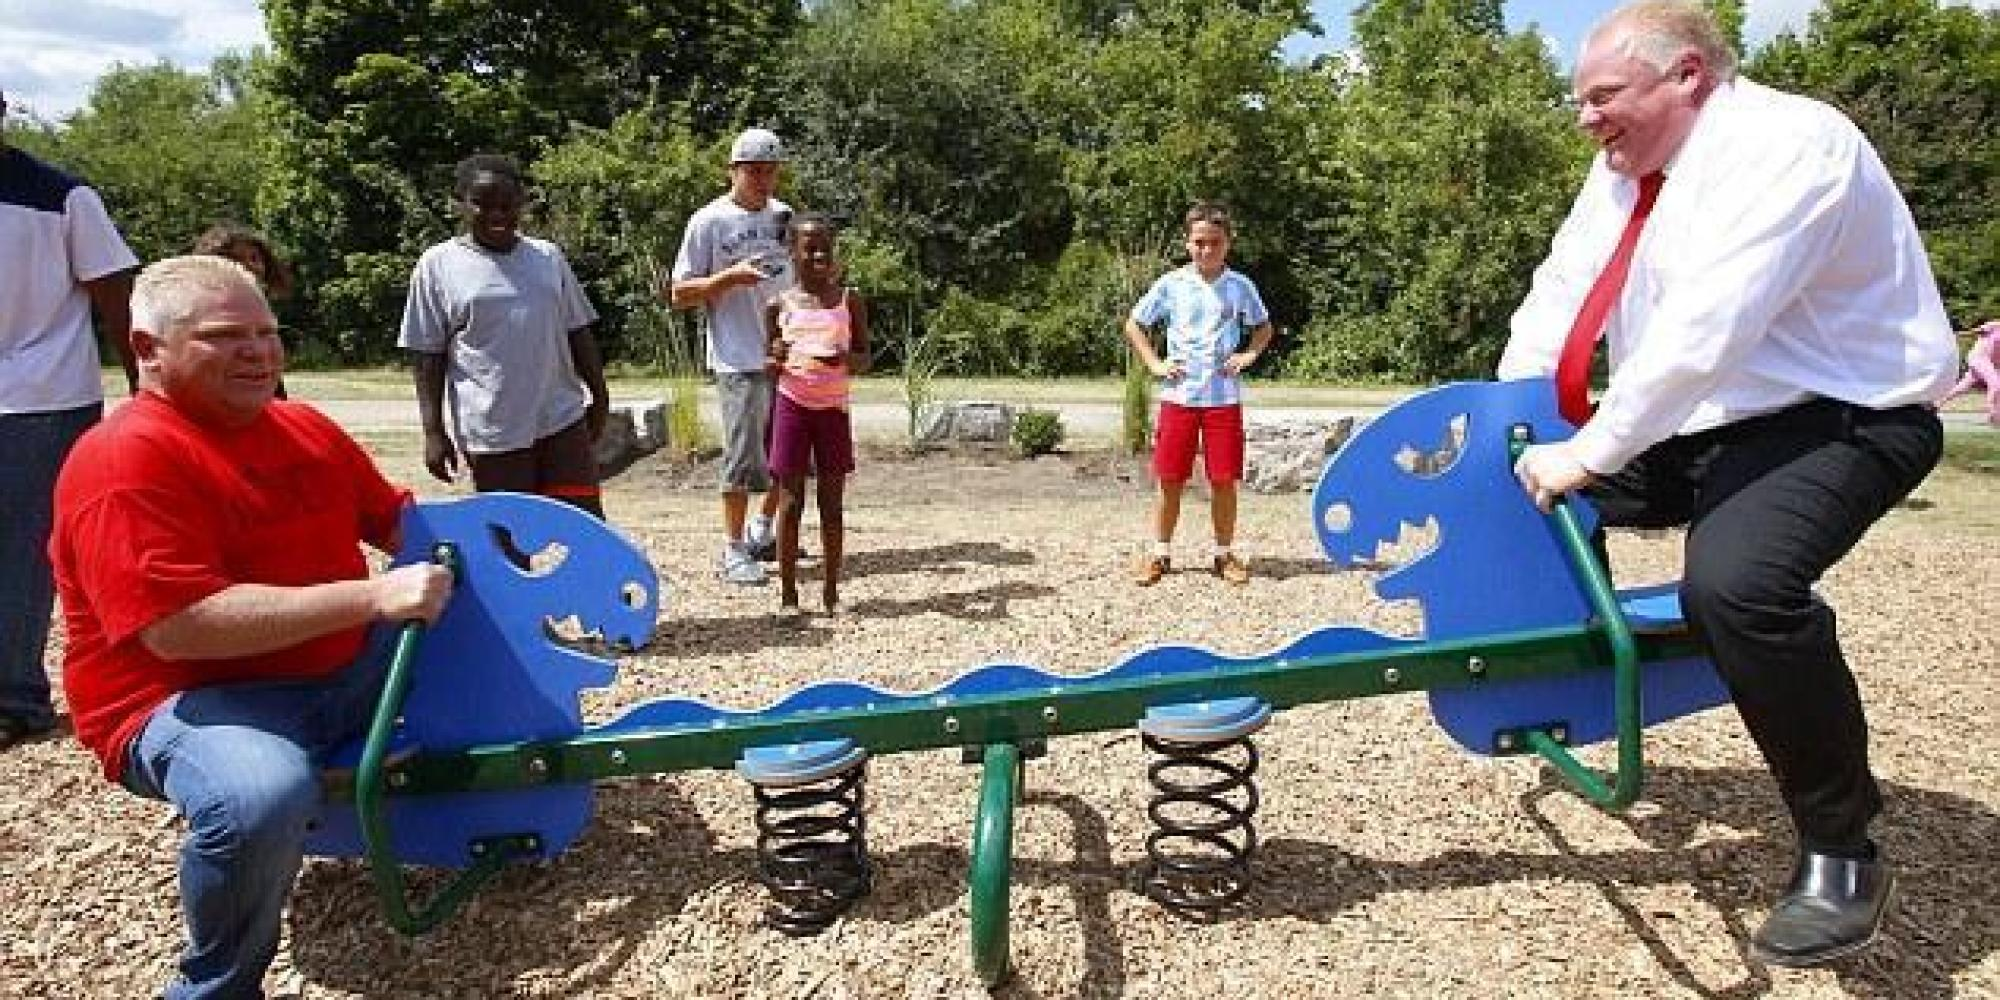 Rob Ford Rides A Seesaw With His Brother In A Toronto Park